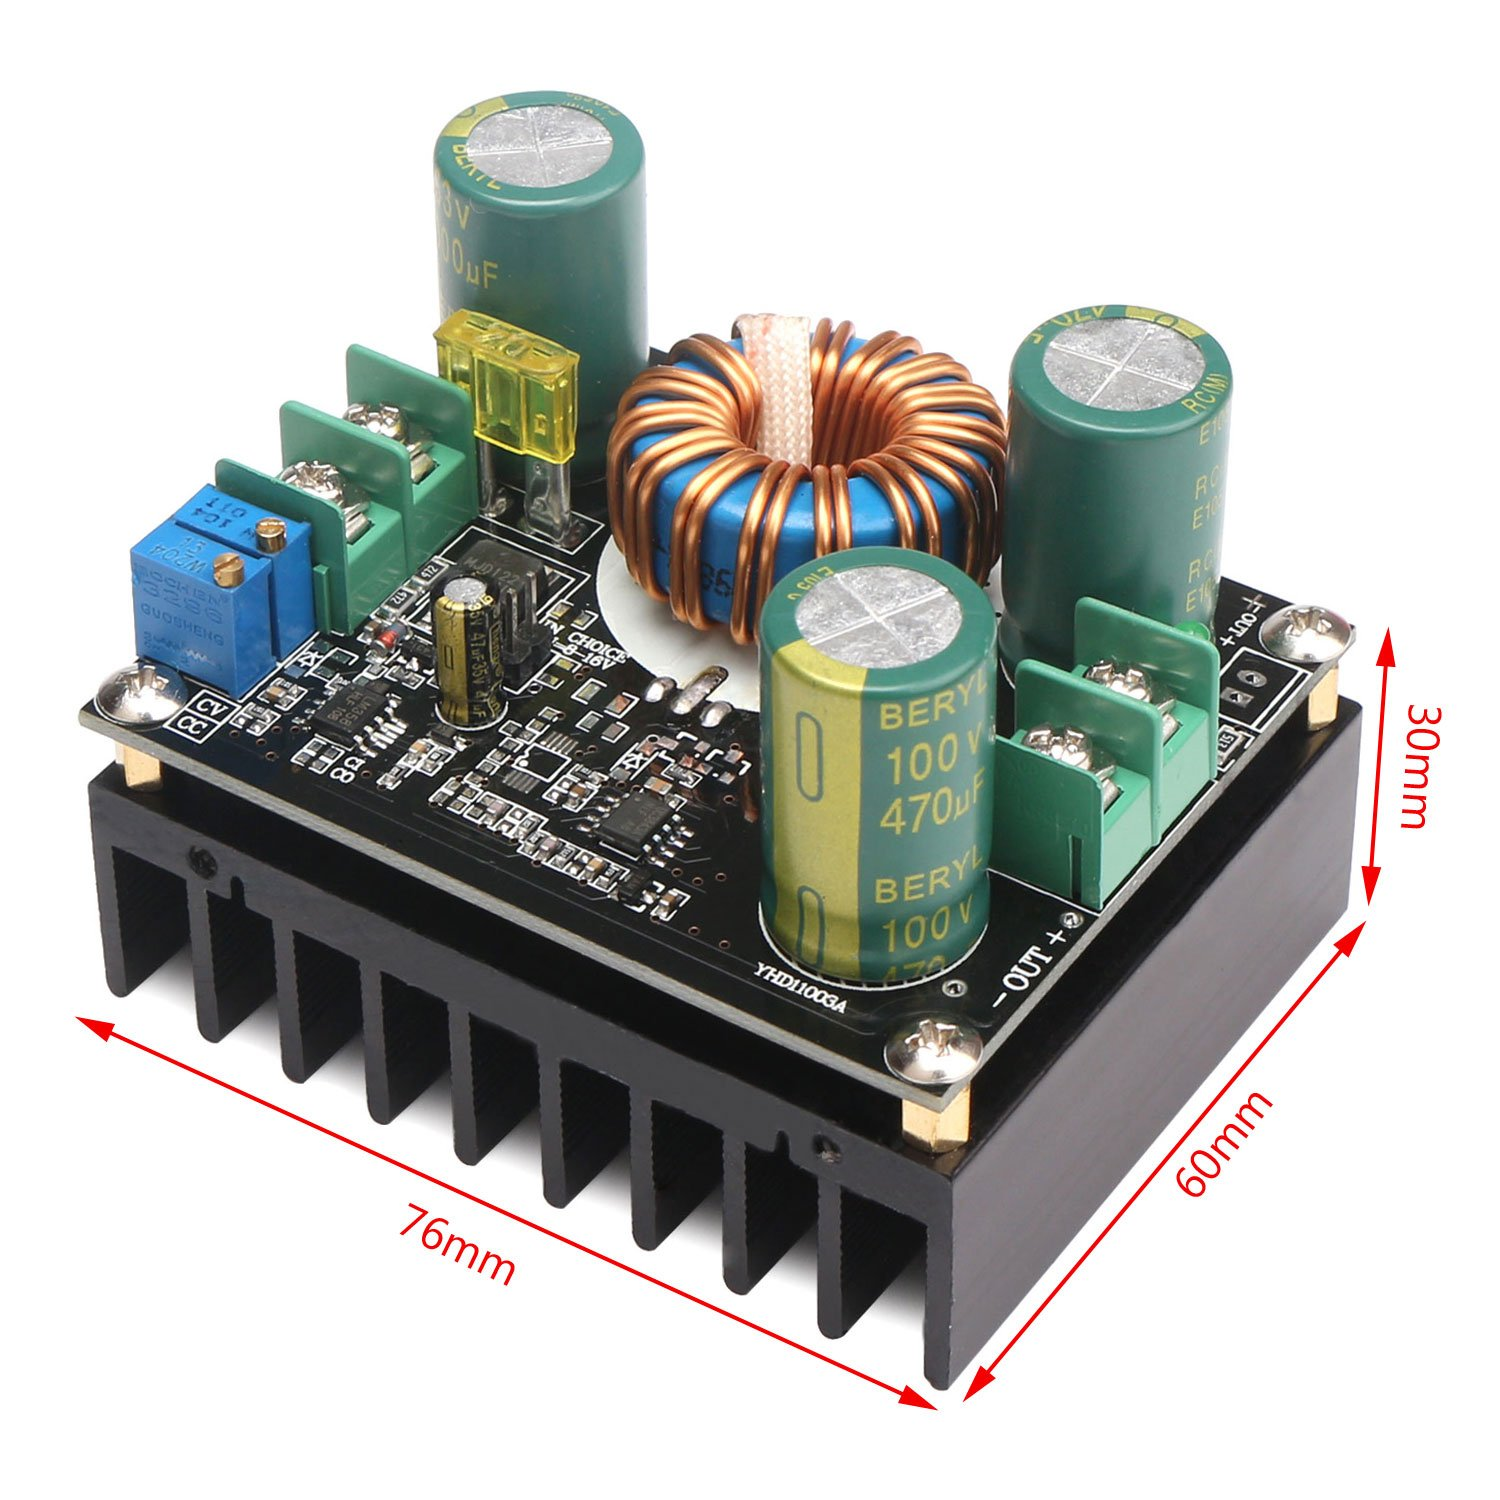 Drok 600w 12a Dc Boost Voltage Converter 12 60v To Step Up Circuit 80v Power Supply Transformer Module Regulator Controller Constant Volt Amp Car